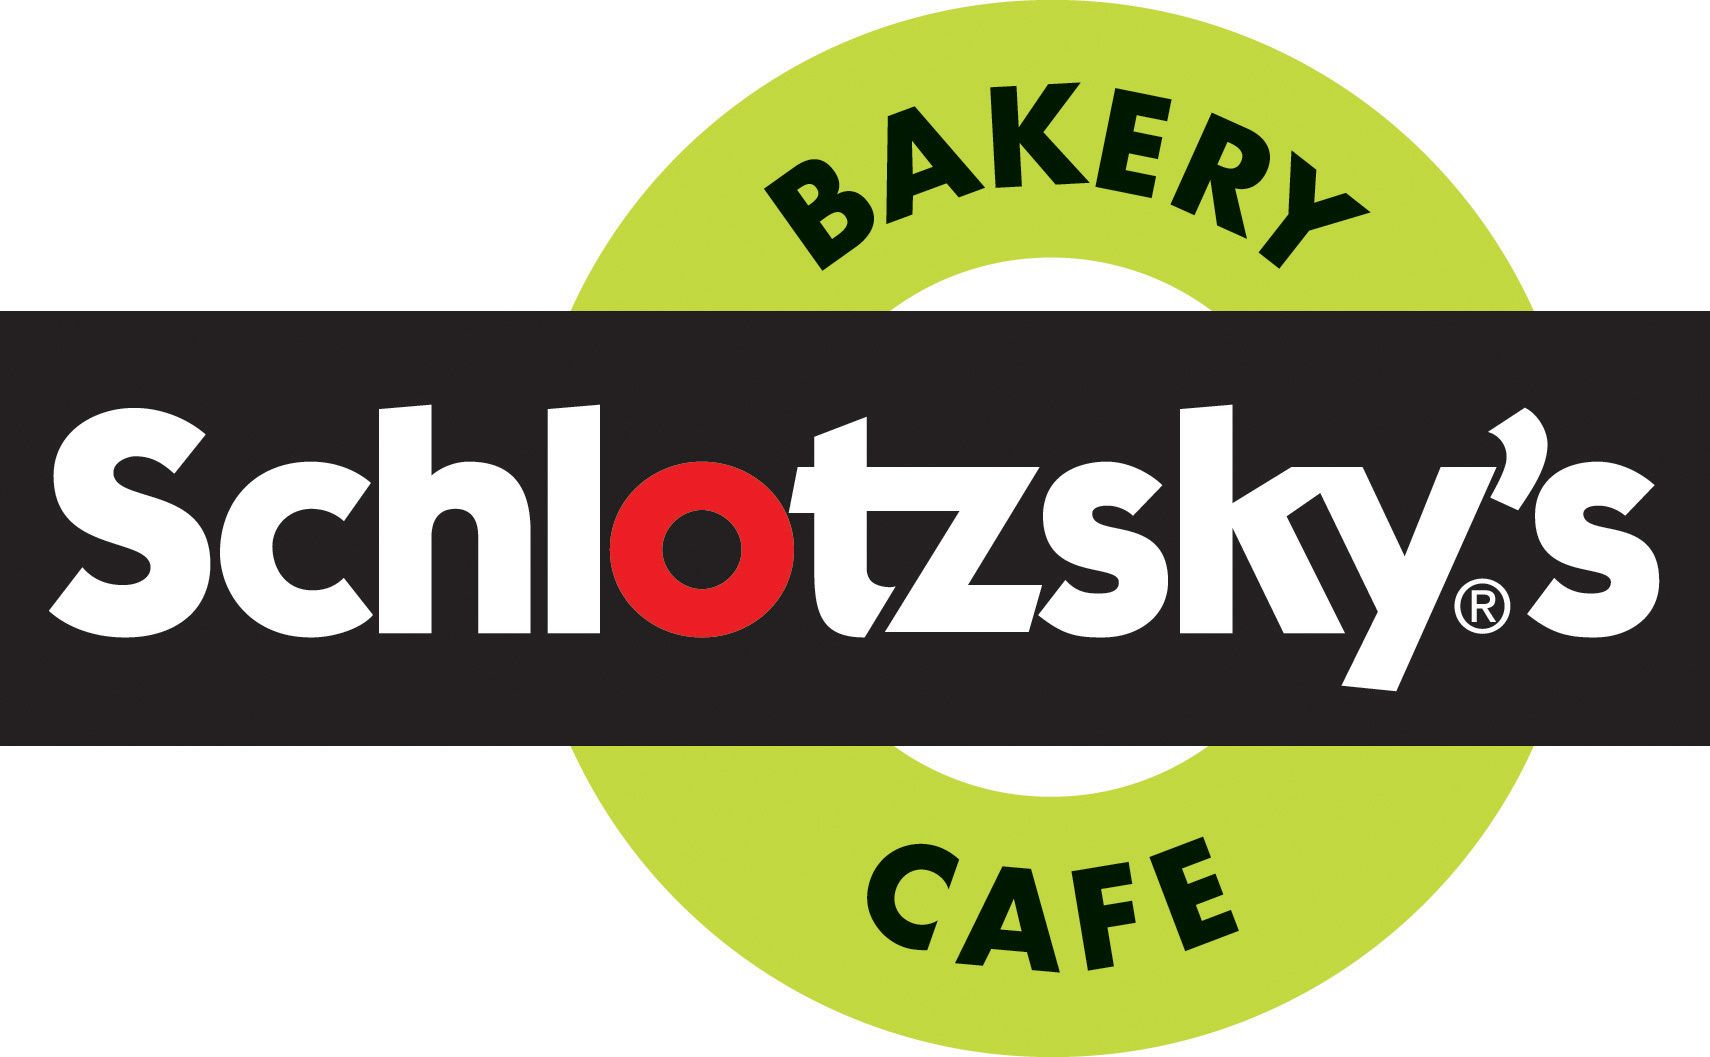 Schlotzsky's on Pinhook